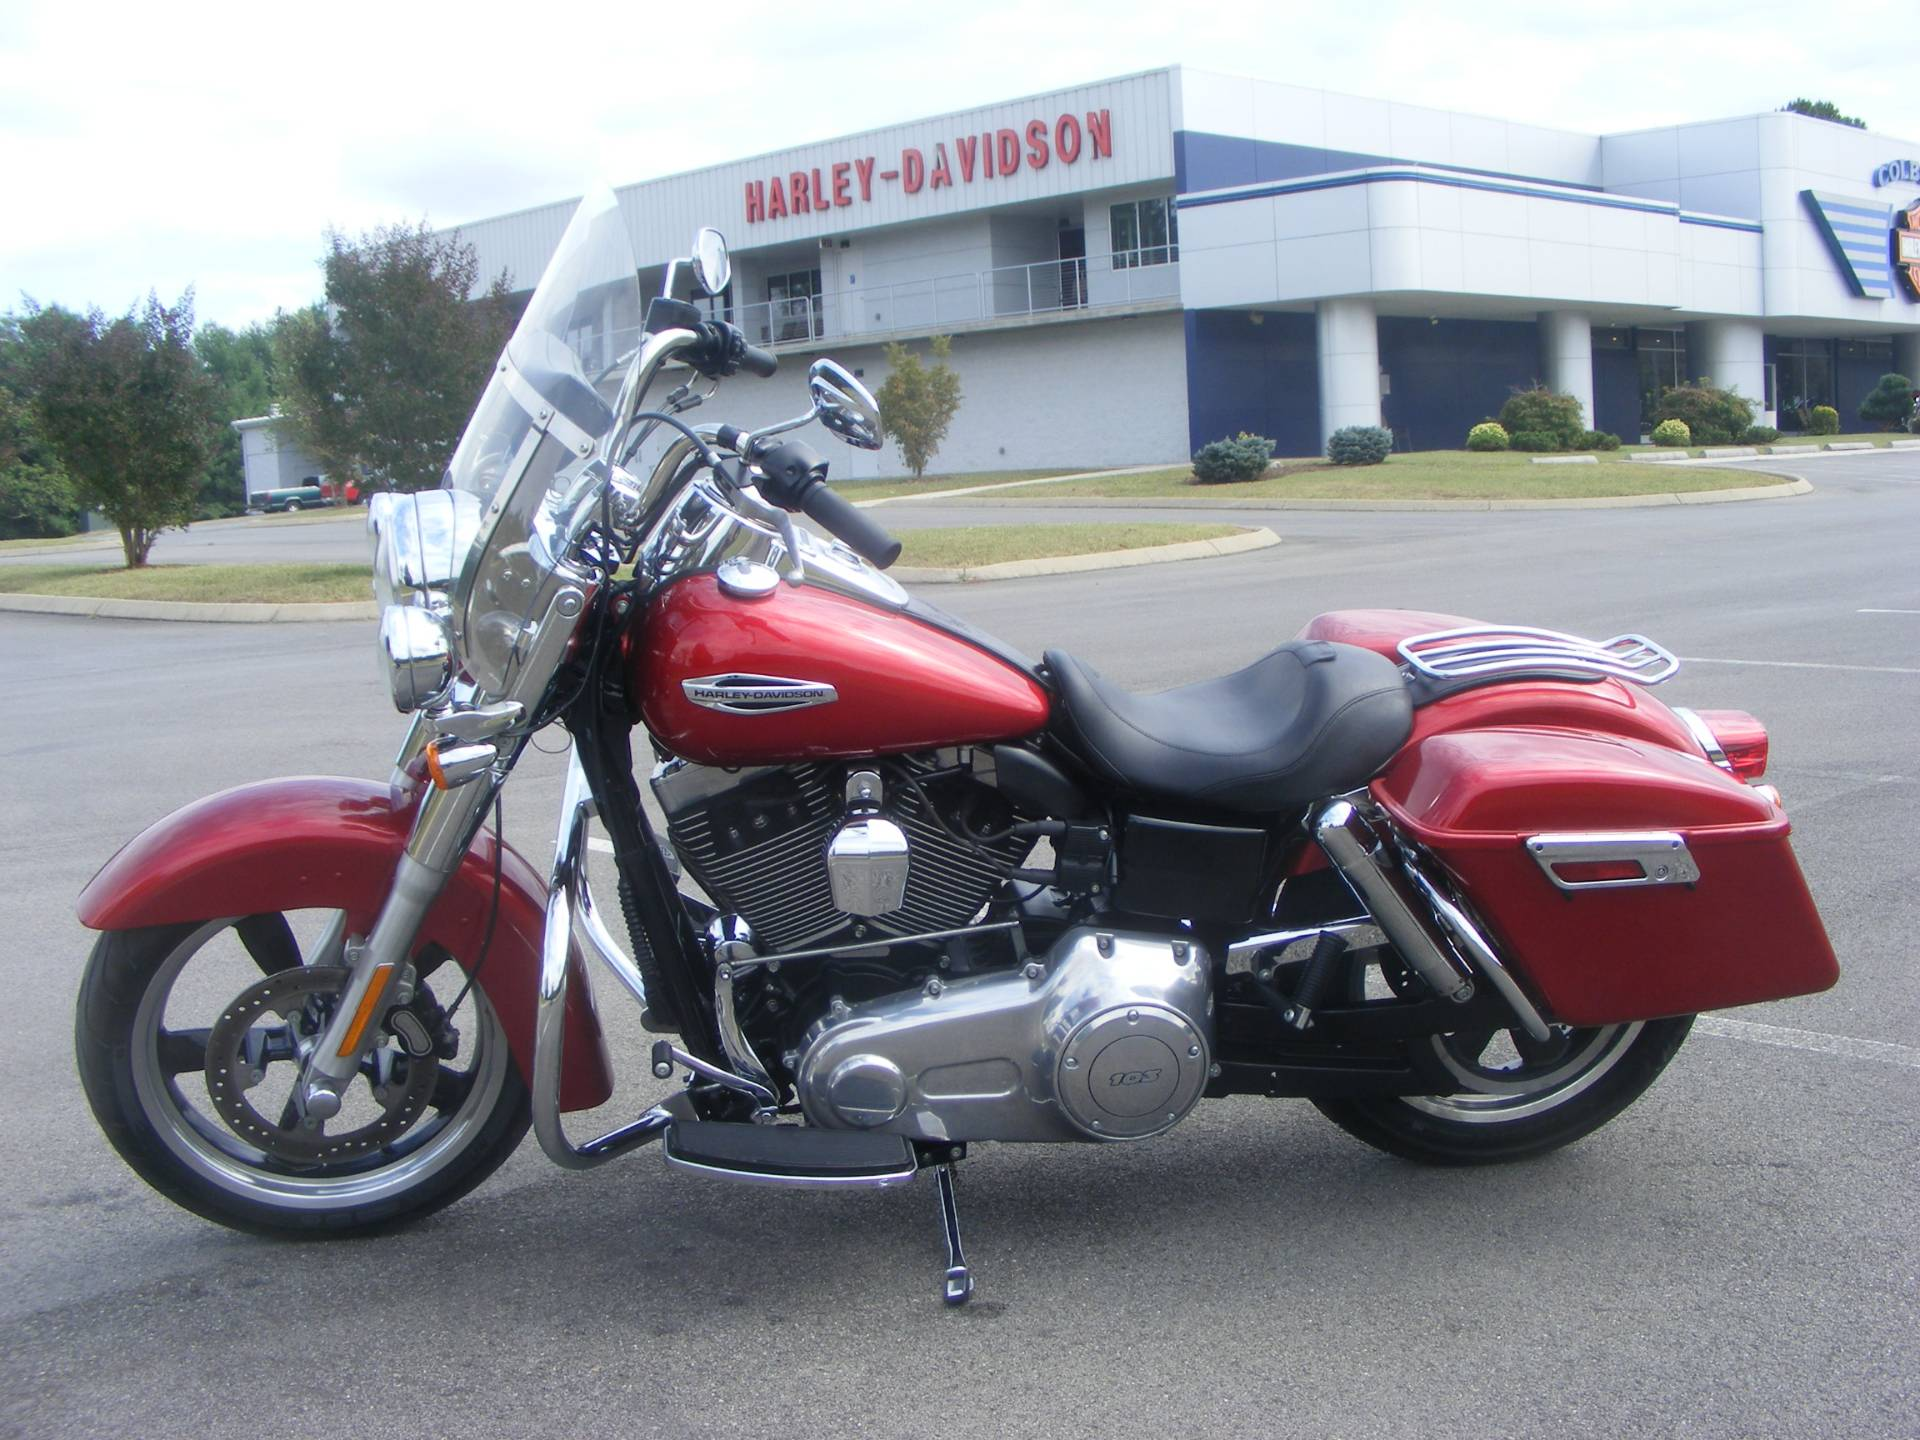 2012 Harley-Davidson 1HD1GZM16CC311604 in Morristown, Tennessee - Photo 7